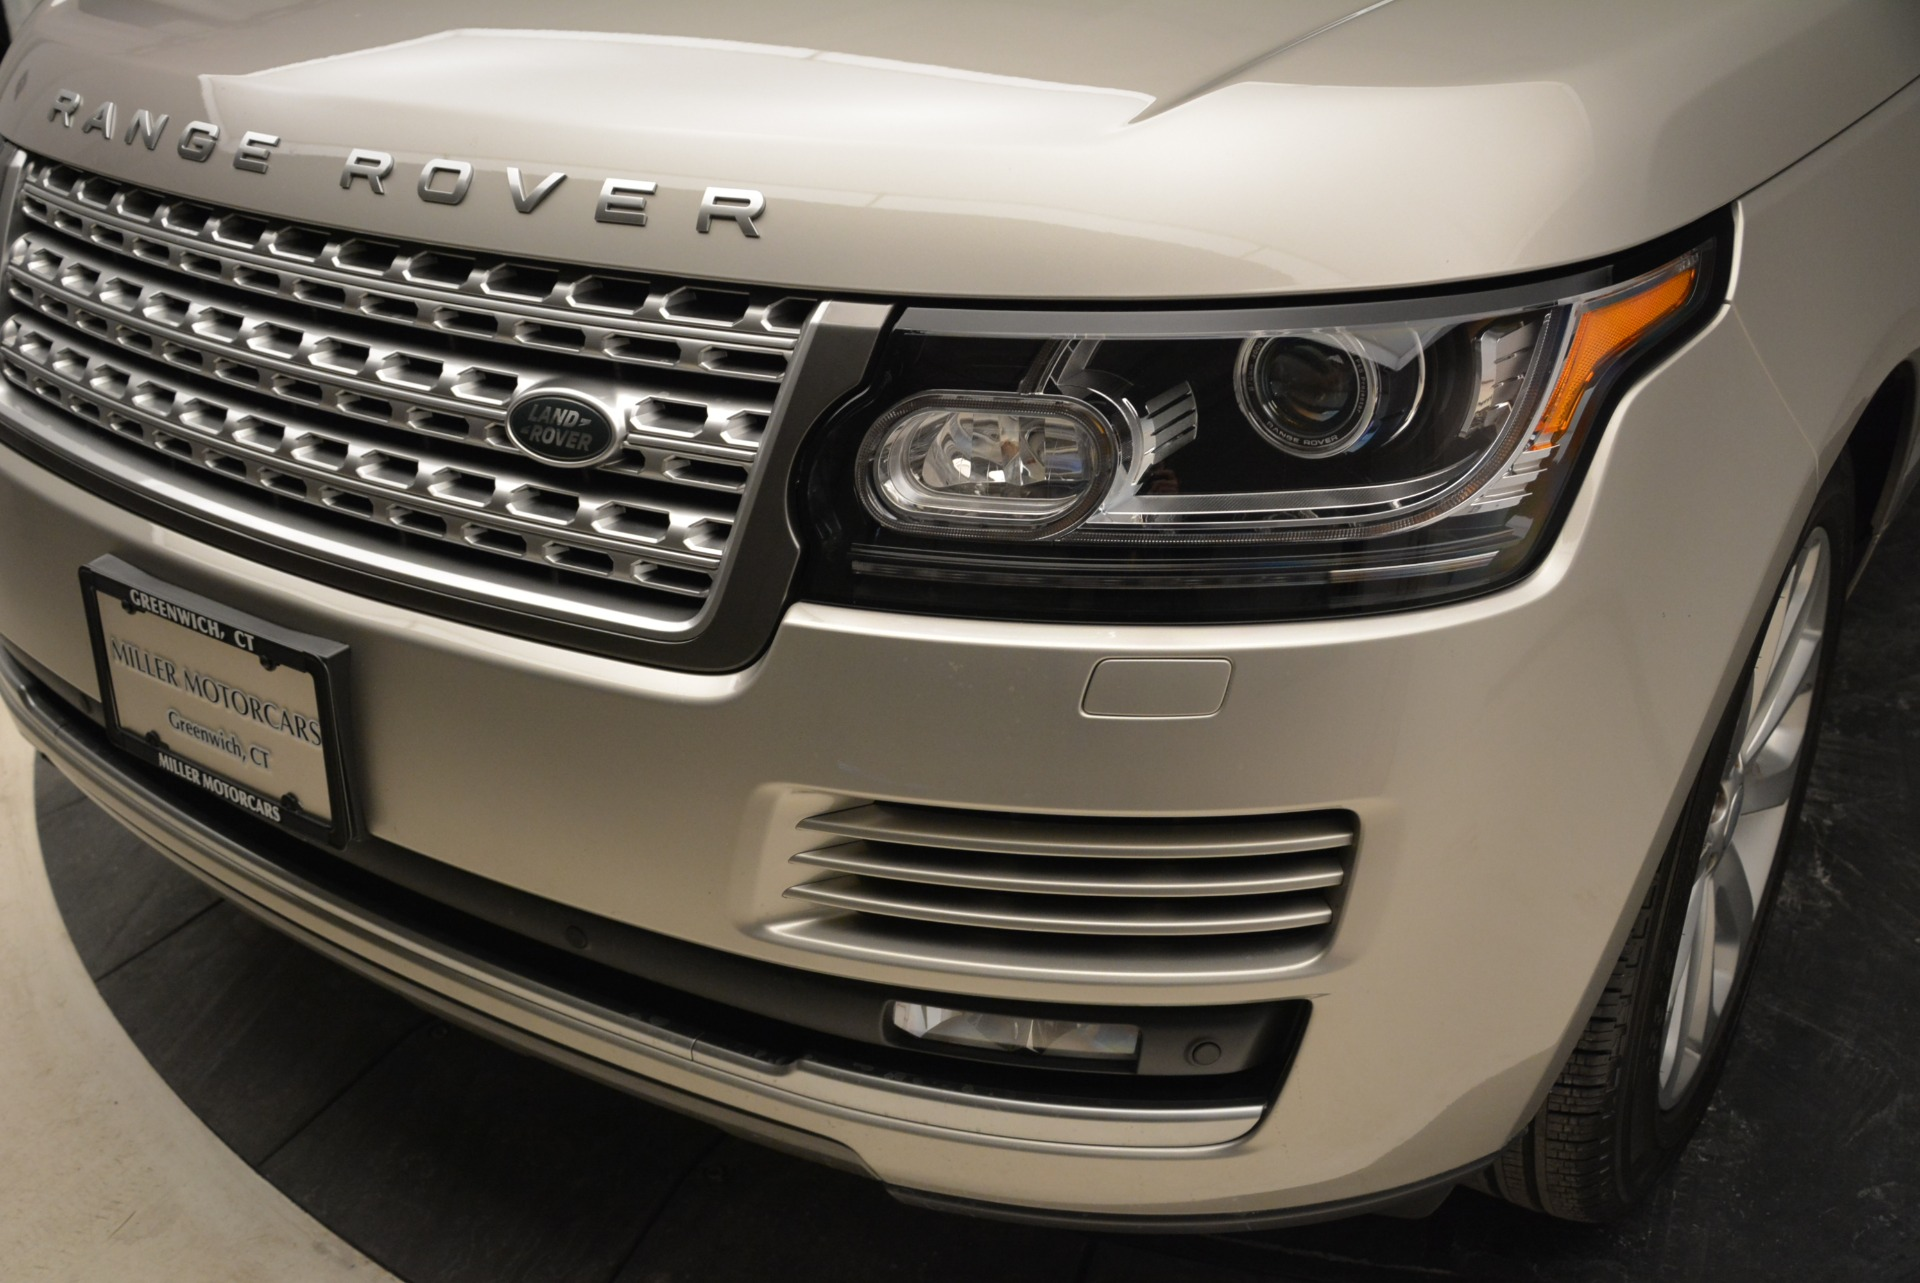 Used 2016 Land Rover Range Rover HSE For Sale In Greenwich, CT. Alfa Romeo of Greenwich, 7314 1962_p14